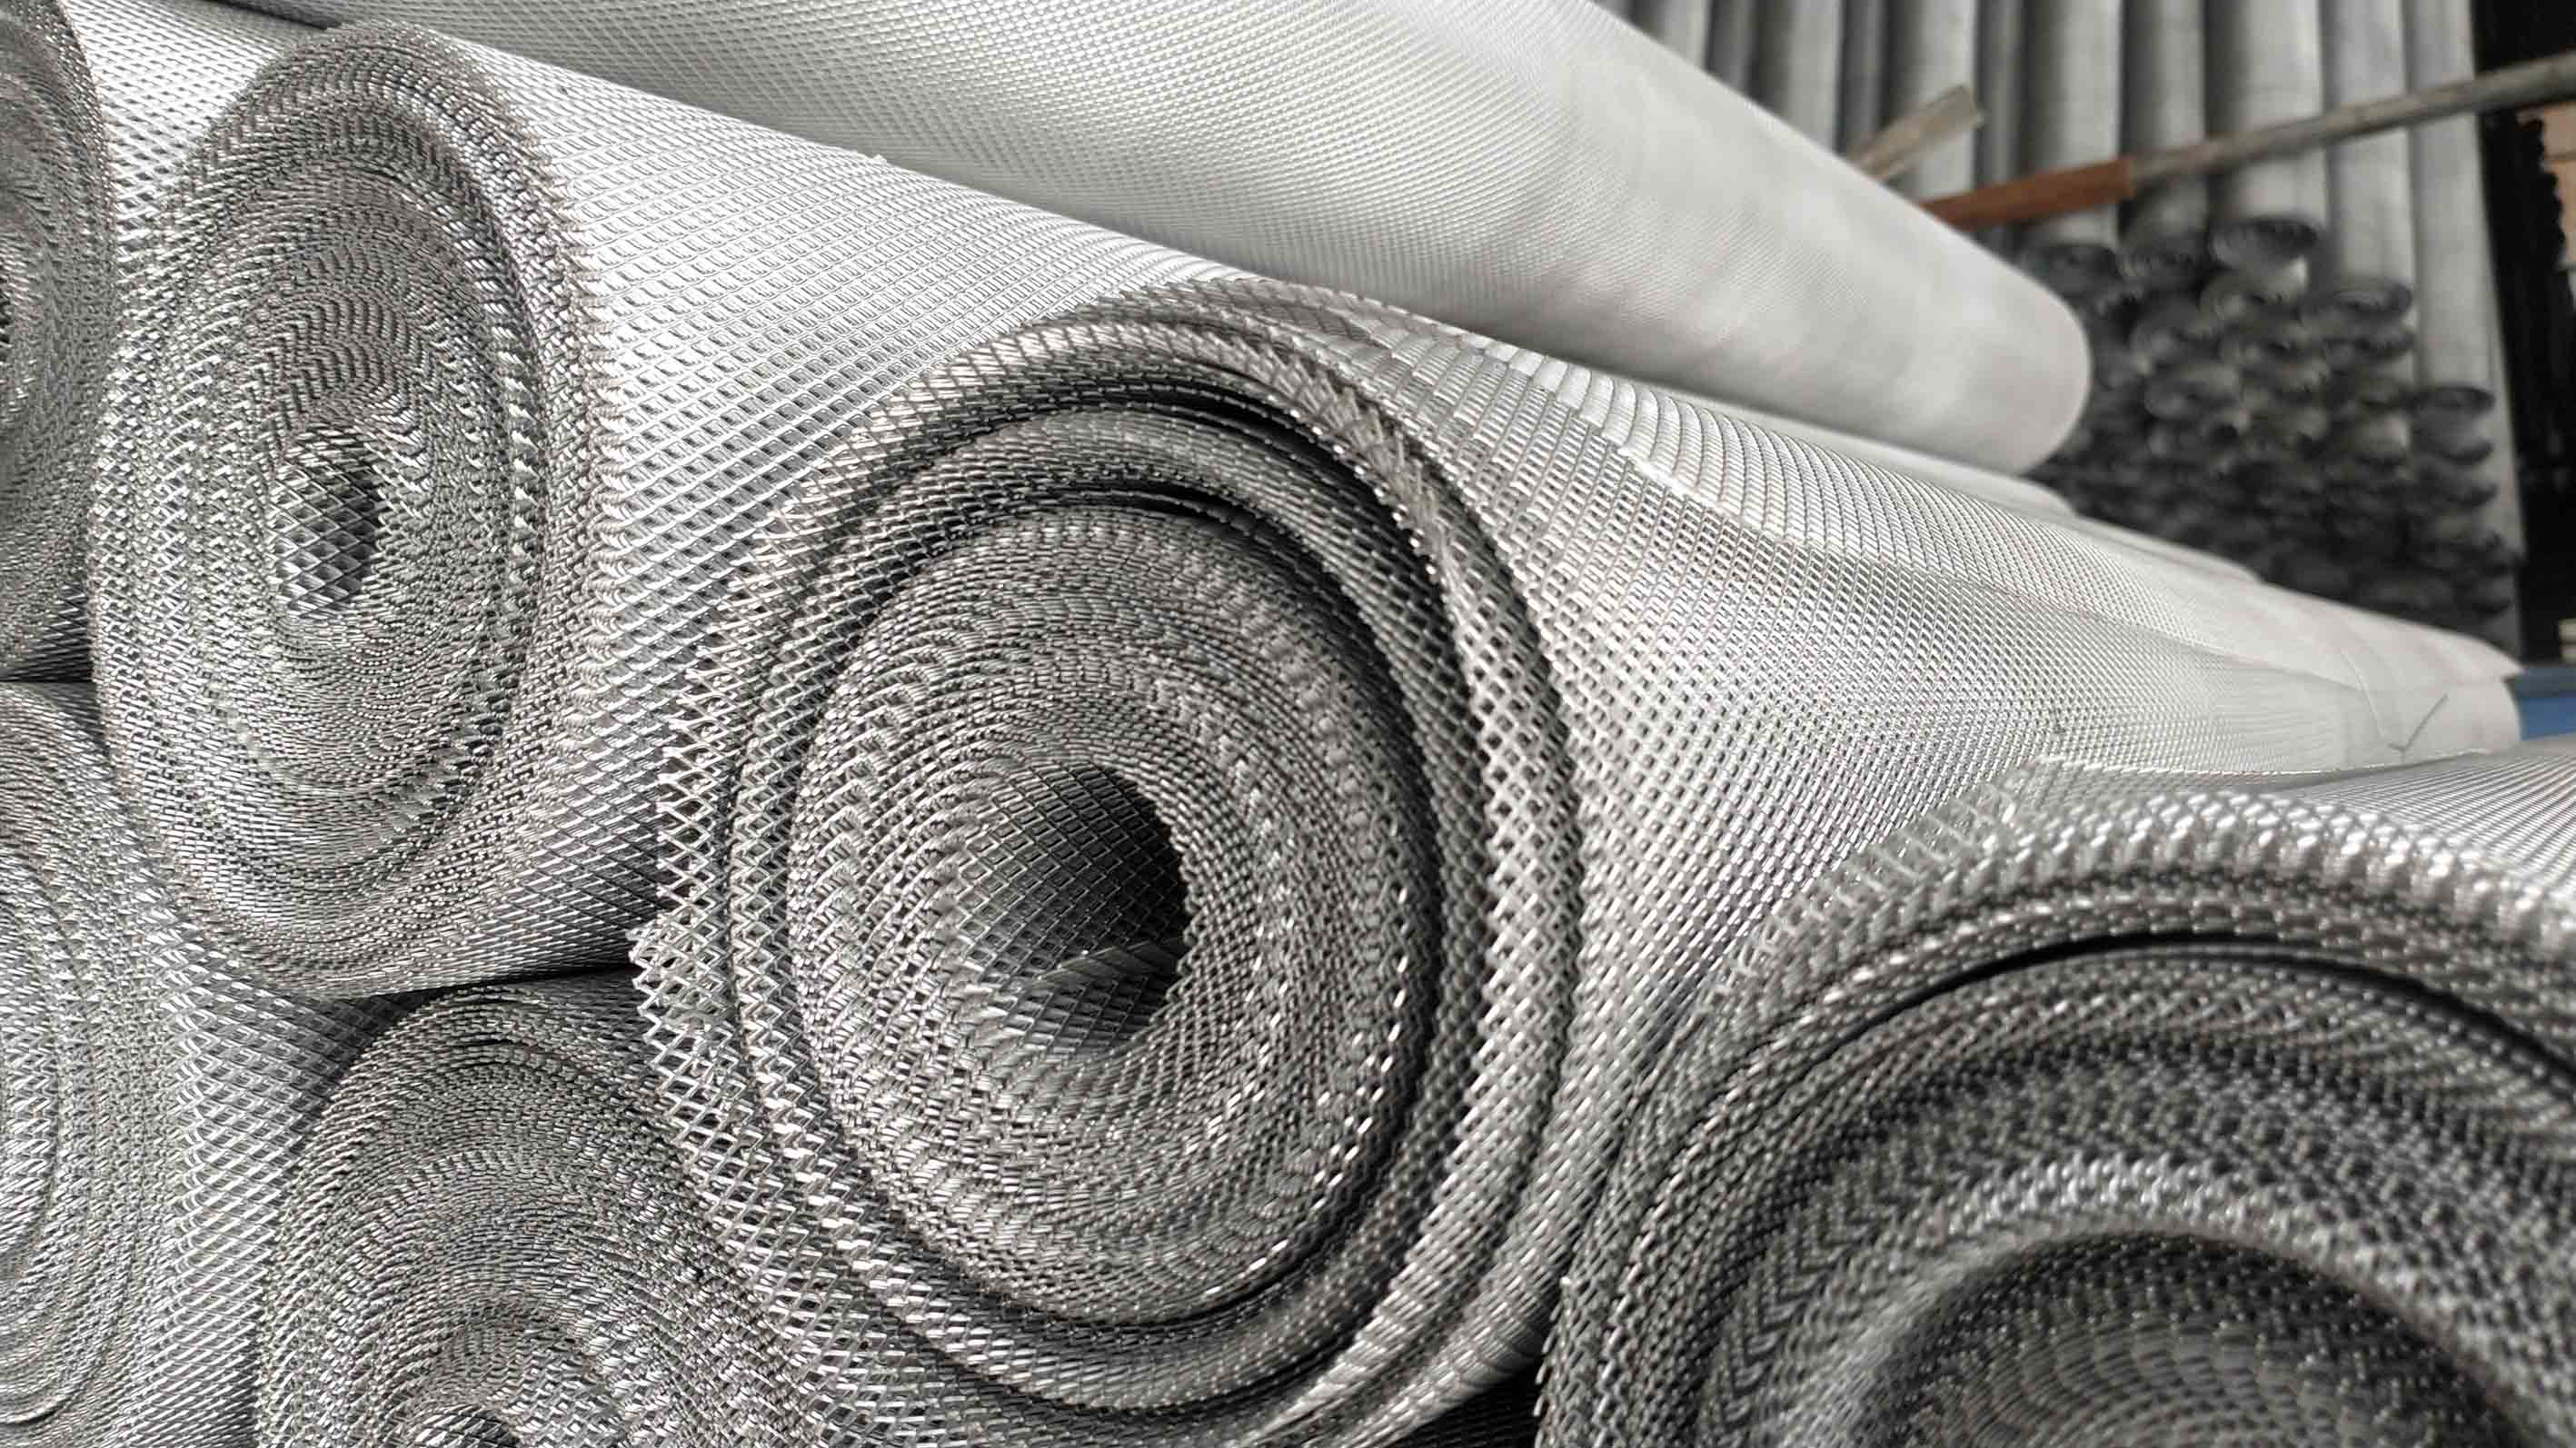 stainless steel expanded mesh with small hole